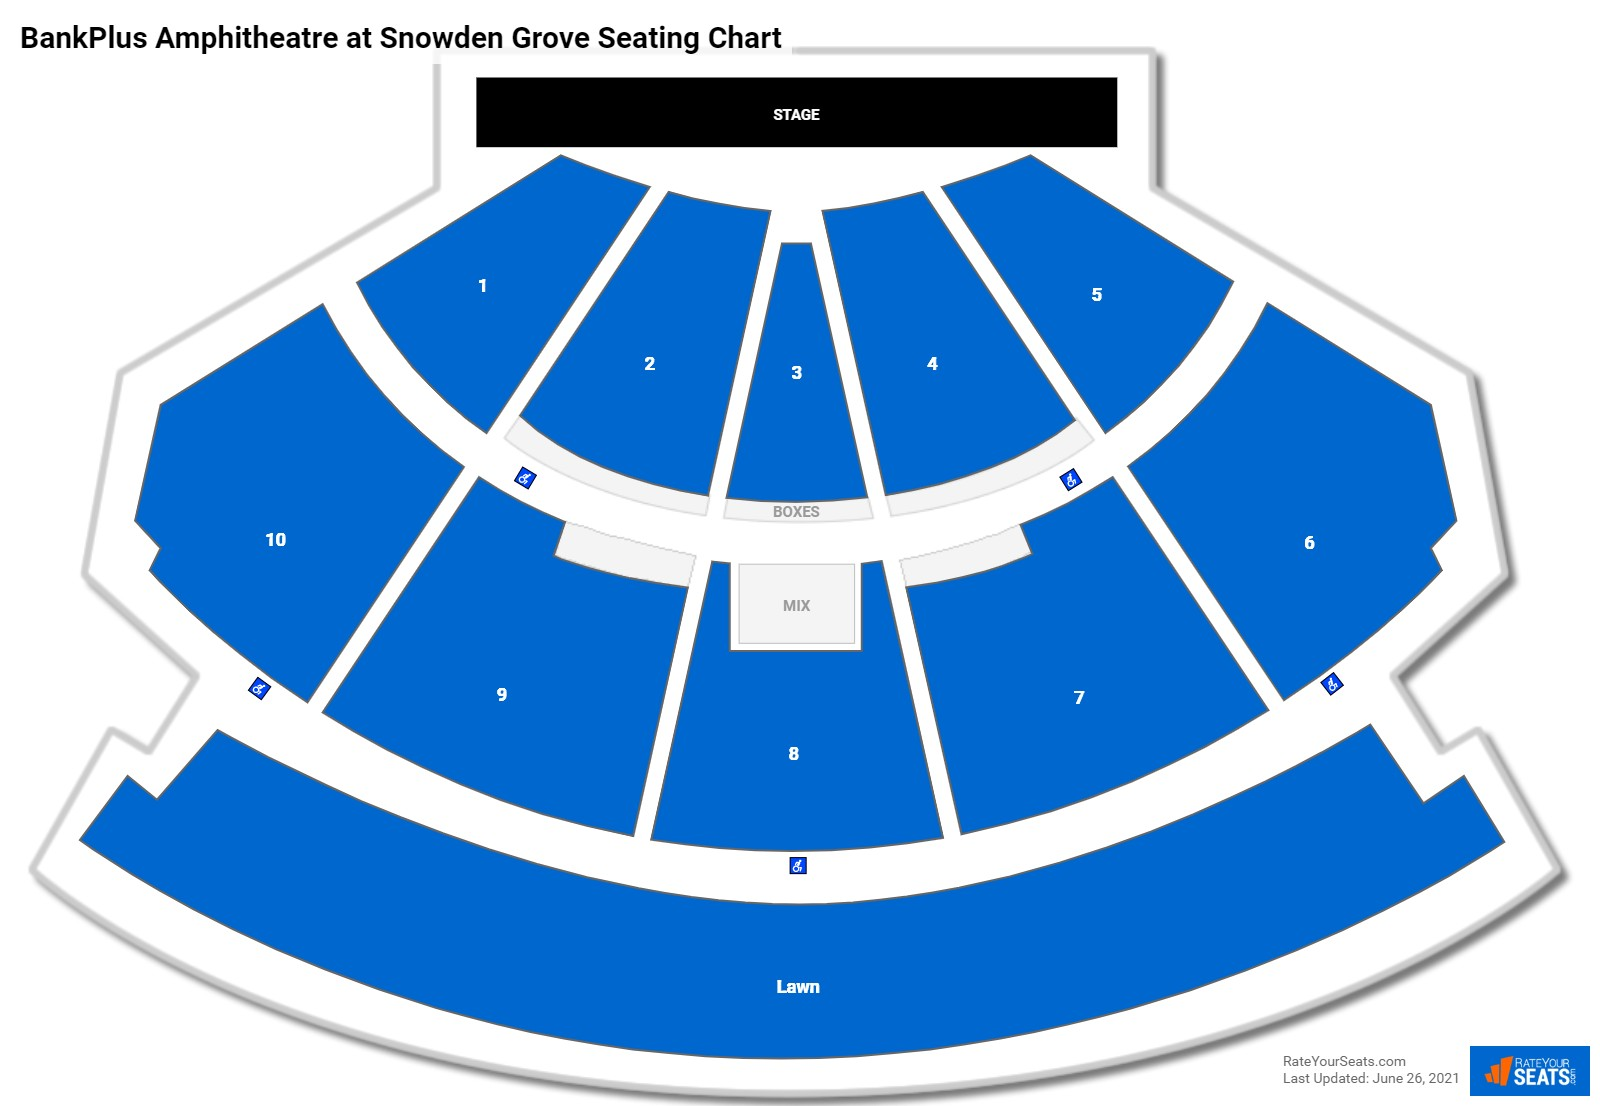 BankPlus Amphitheatre at Snowden Grove Seating Chart